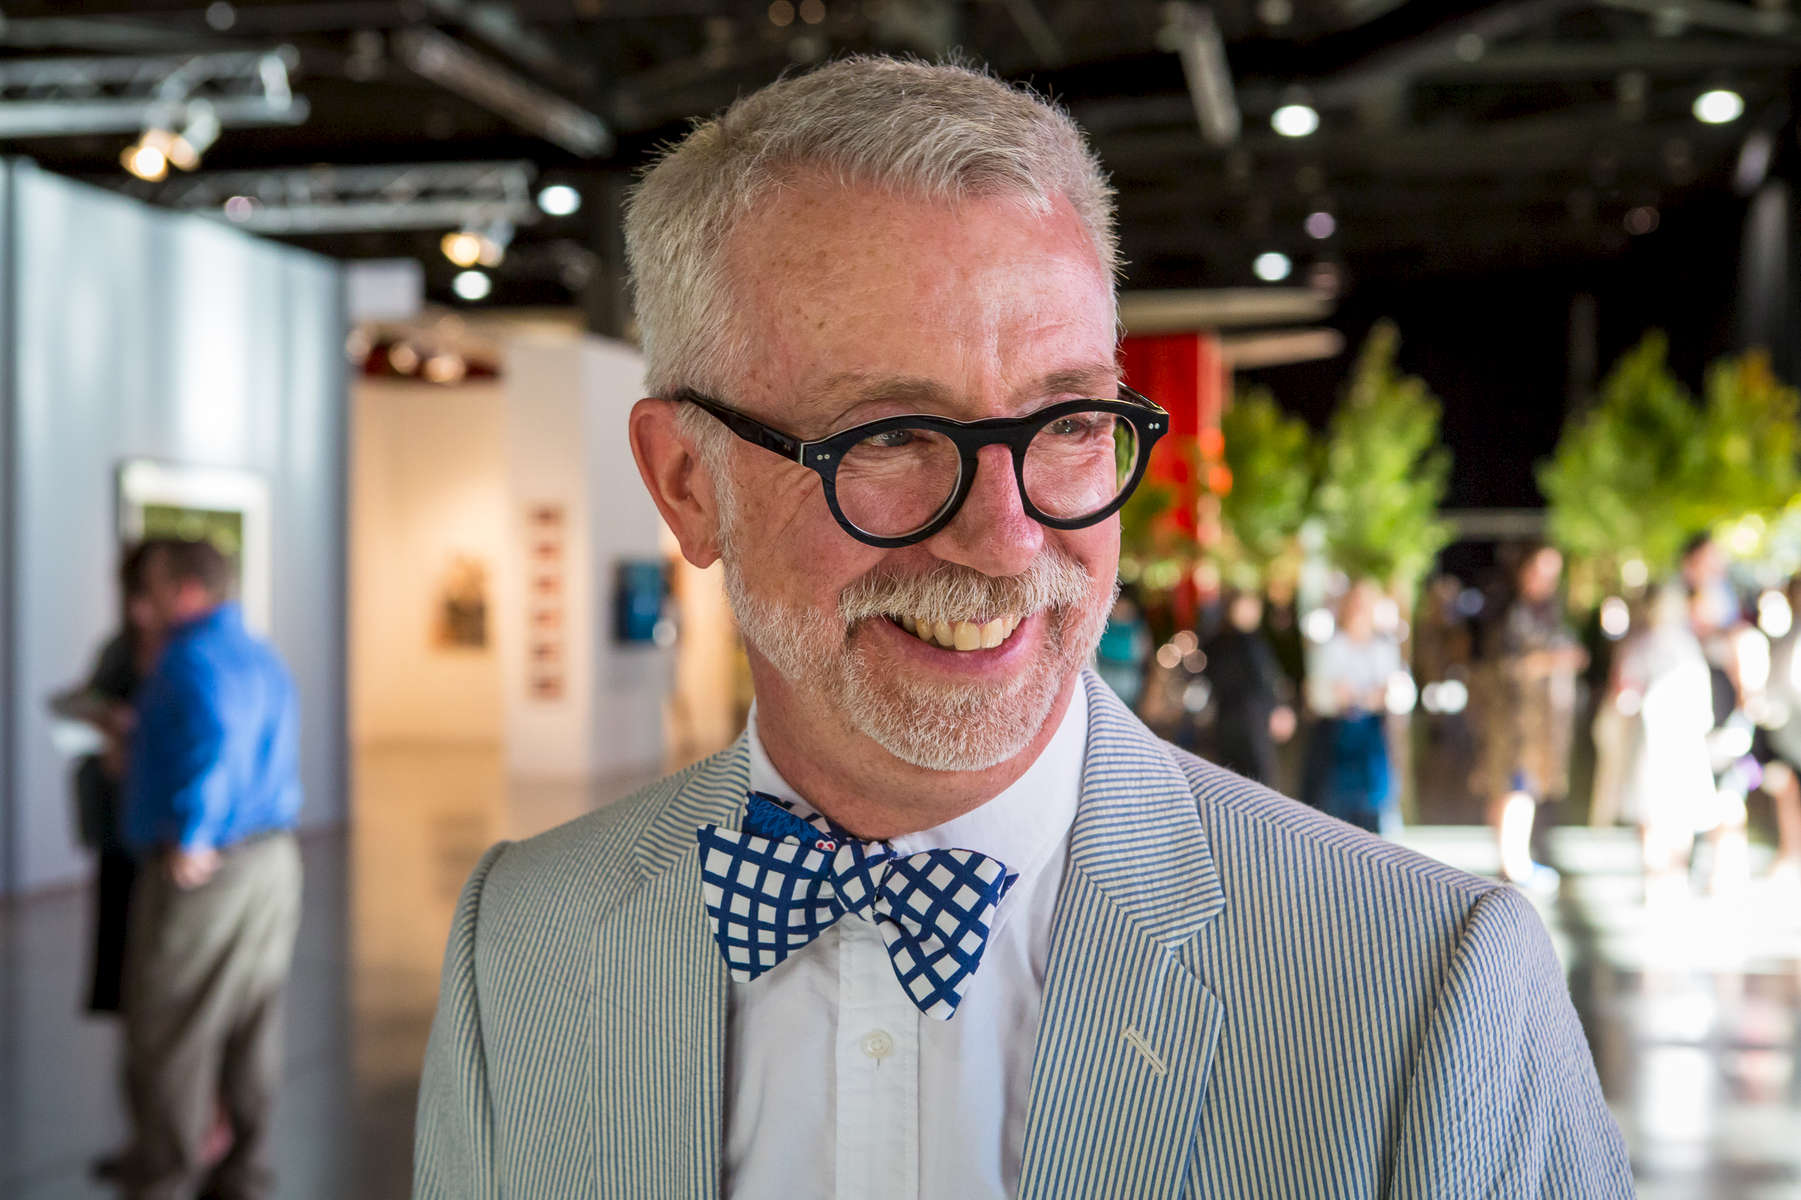 Seattle, WA  July 30, 2015: The Seattle Art Fair Opens at the WaMu theater downtown.  Billionaire Paul Allen's personal art curator/advisor Greg Bell for Vulcan Ventures. Photograph by Evan McGlinn for The New York Times.